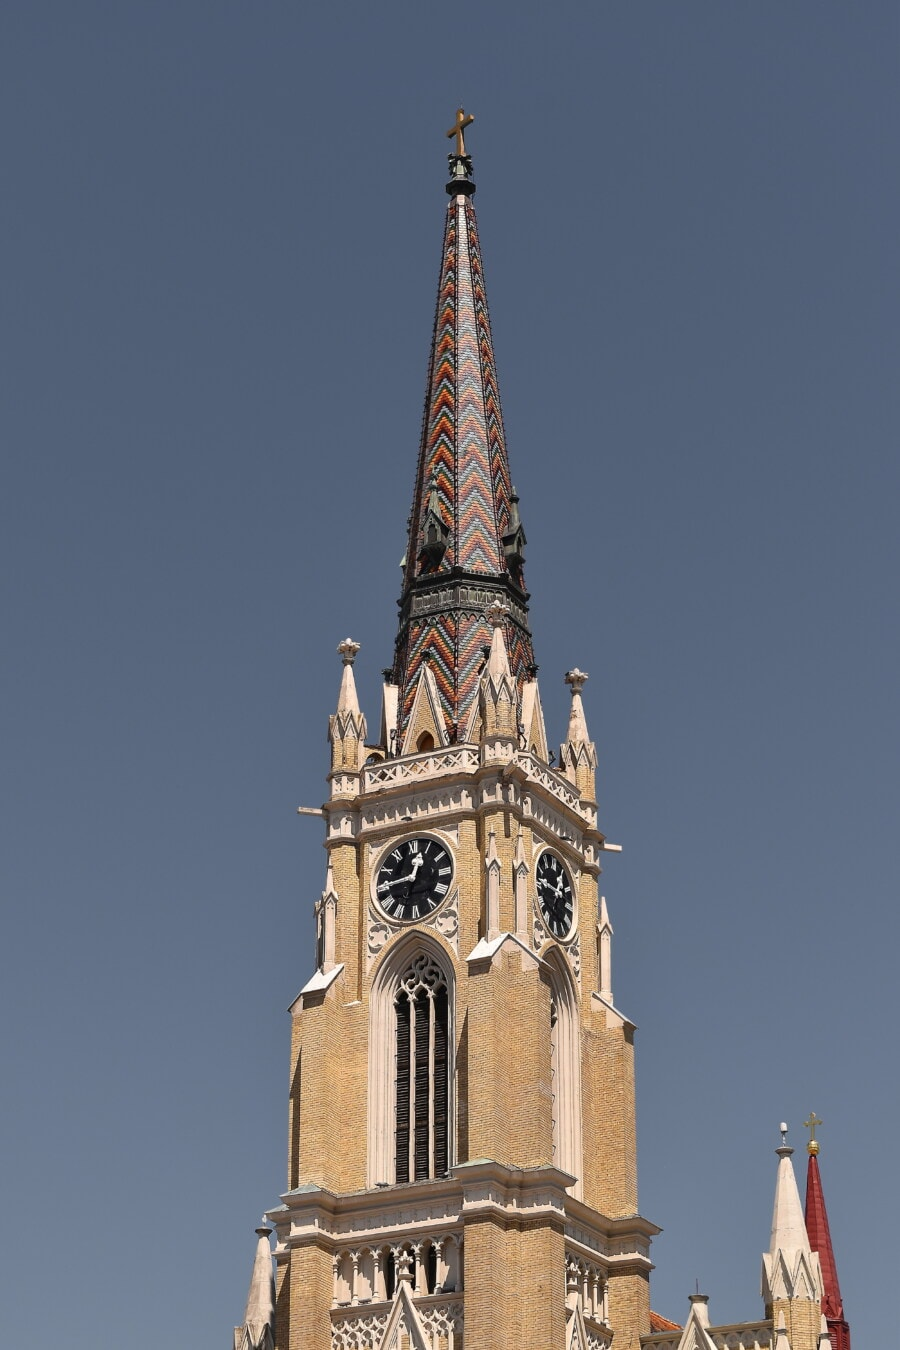 cathedral, gothic, architectural style, analog clock, landmark, building, church, architecture, covering, tower